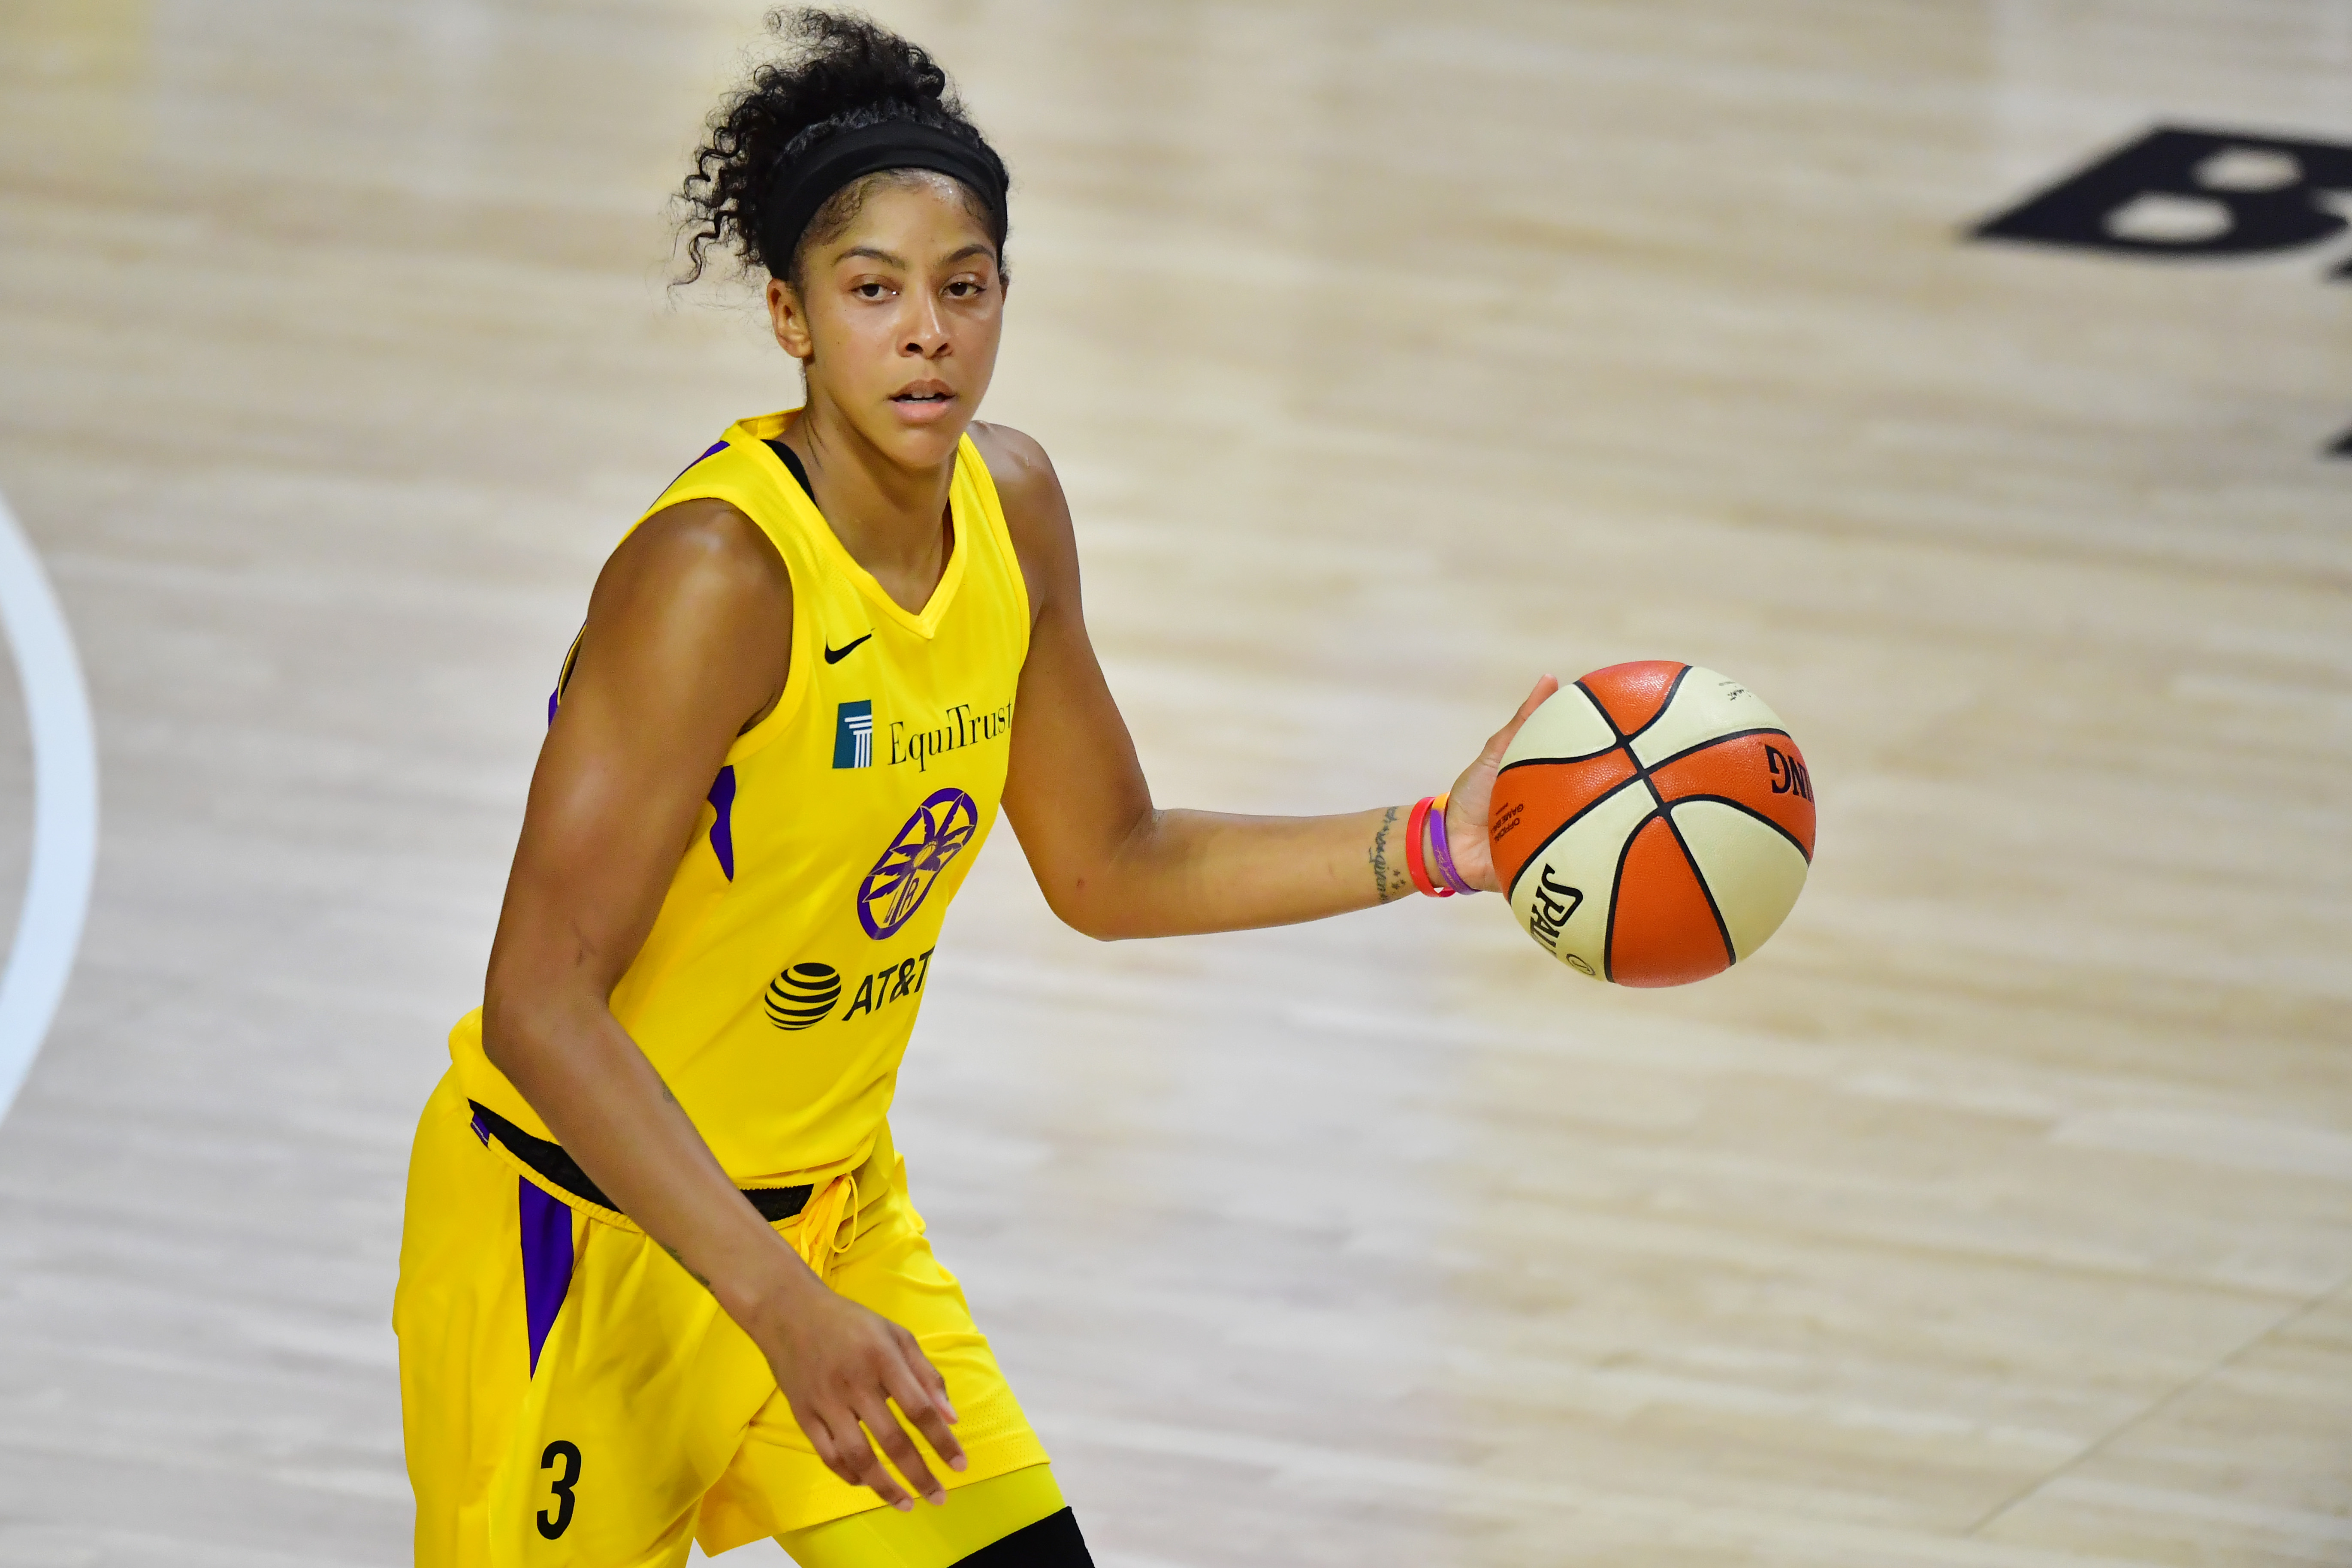 Candace Parker, with ball, on the court.